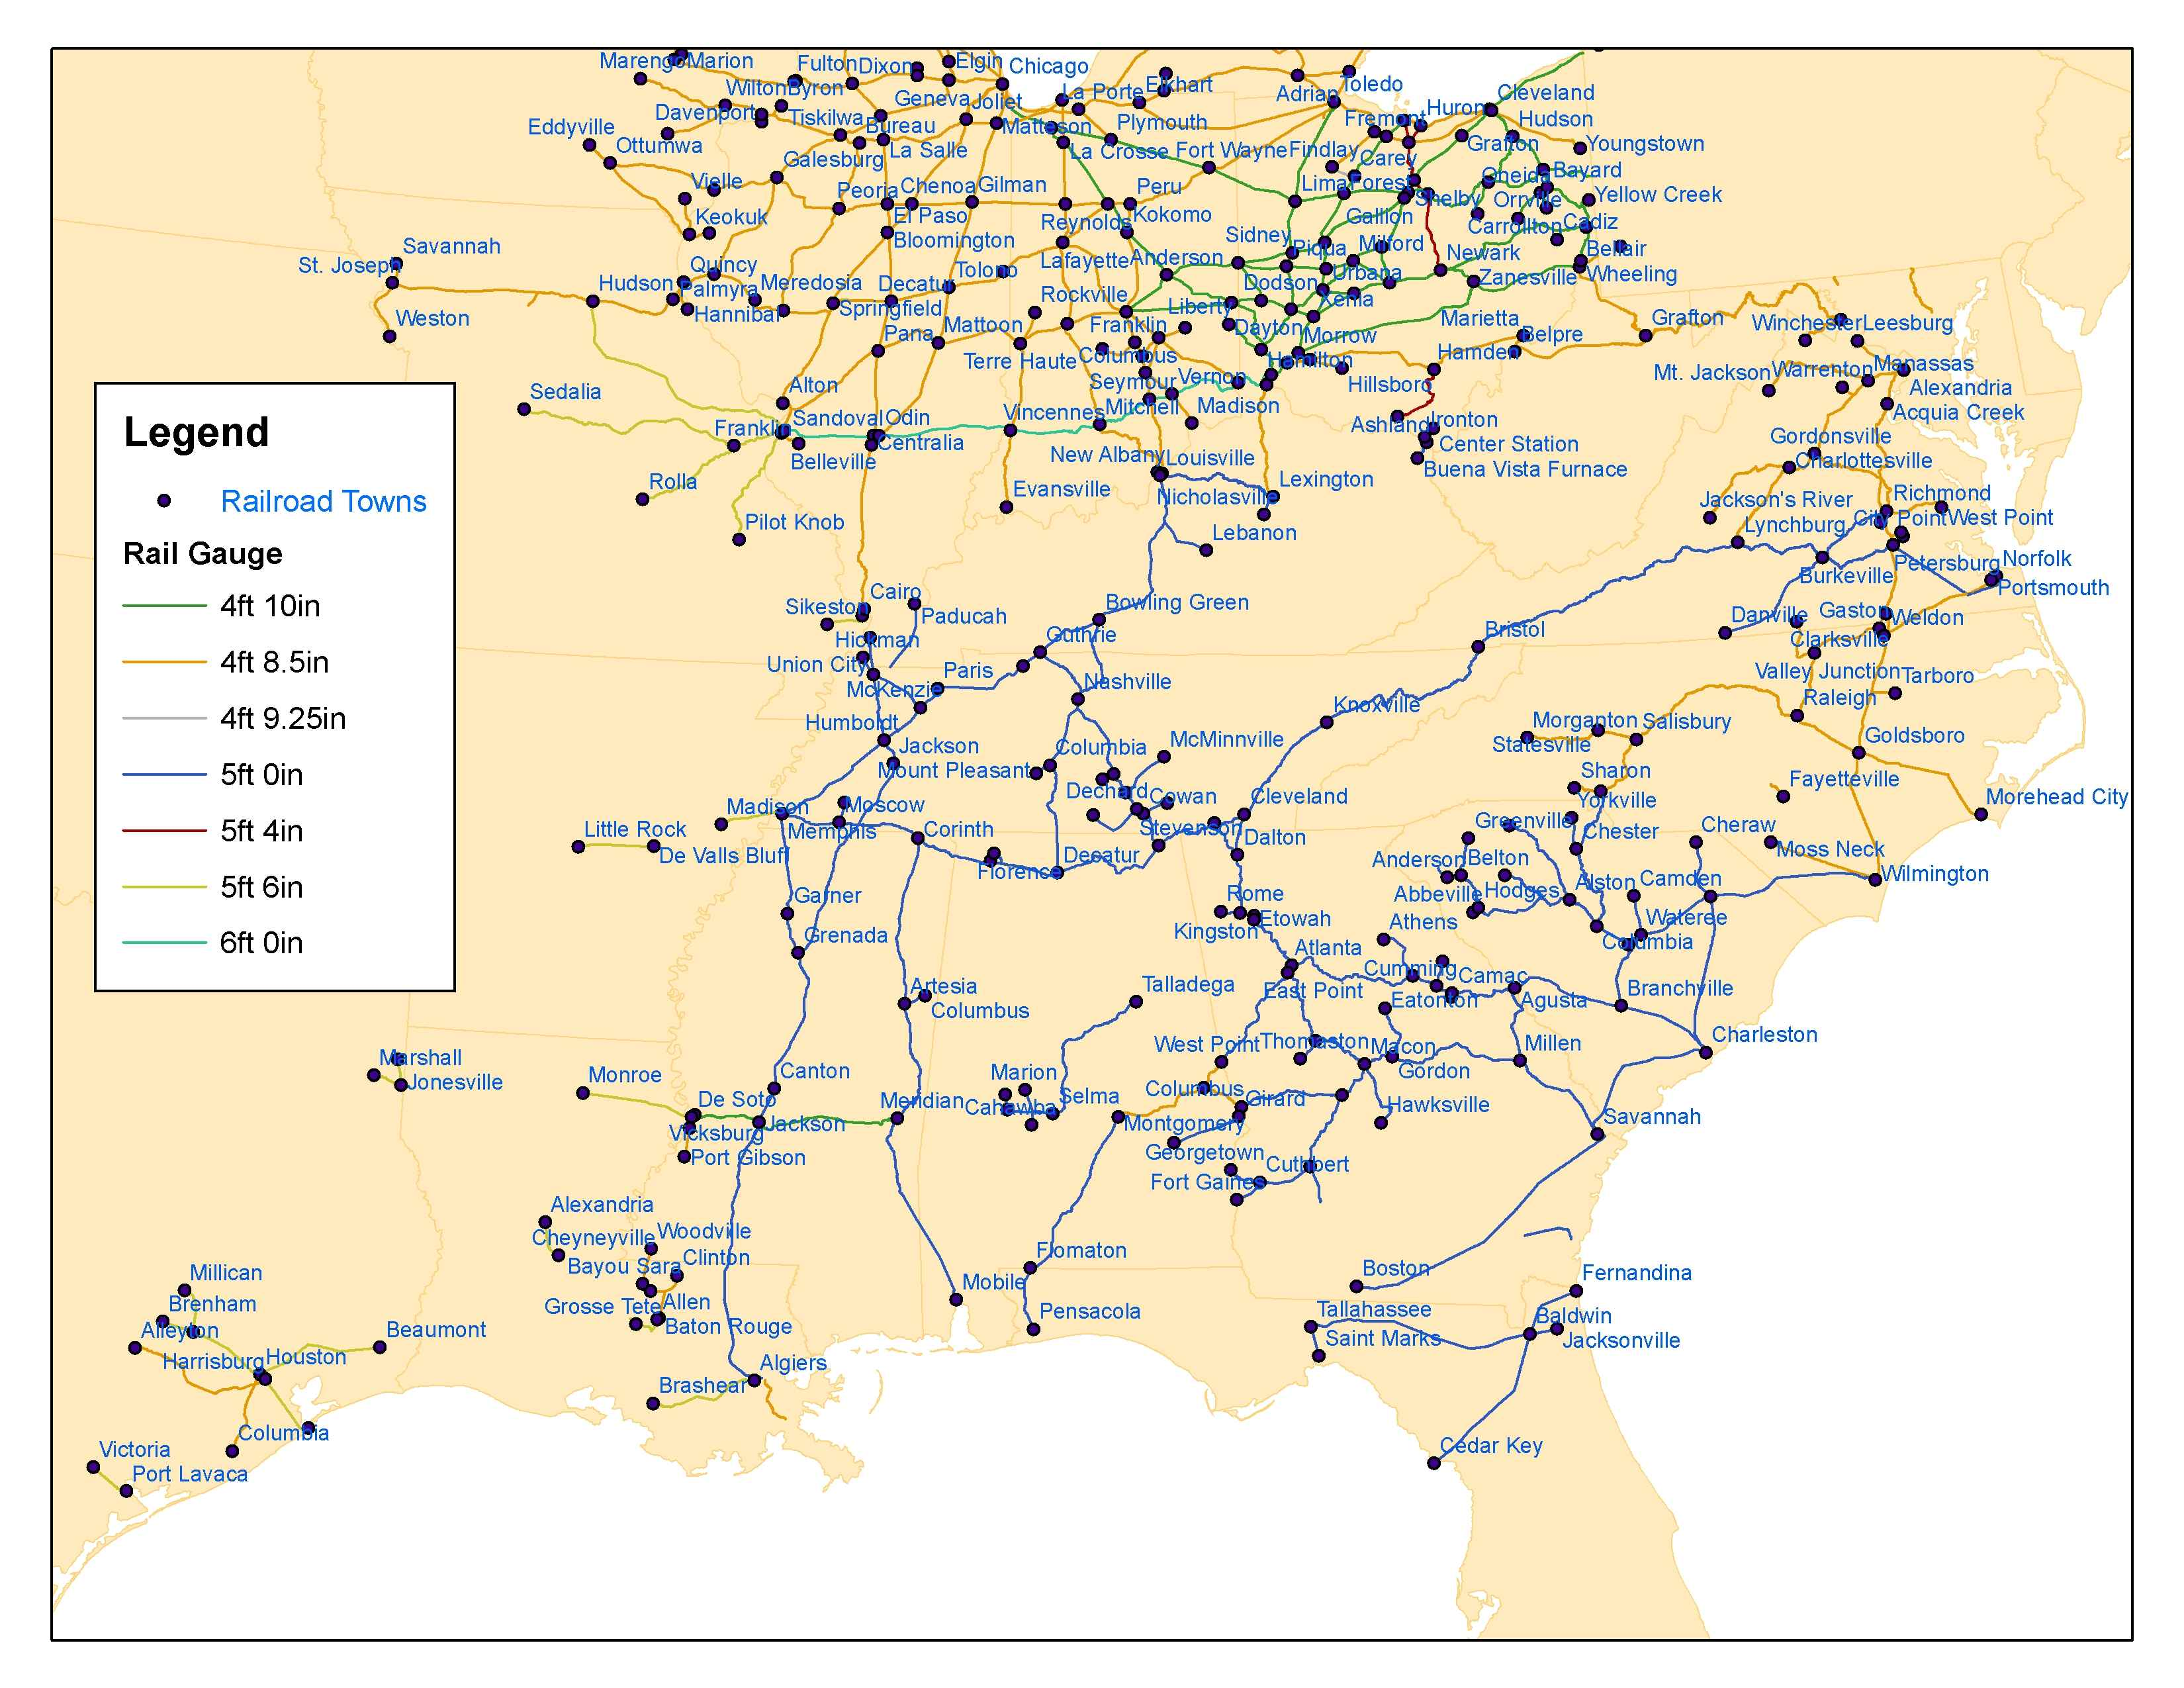 Best Image Of Diagram Us Railroad Map  More Maps Diagram - Us railroad map 1860